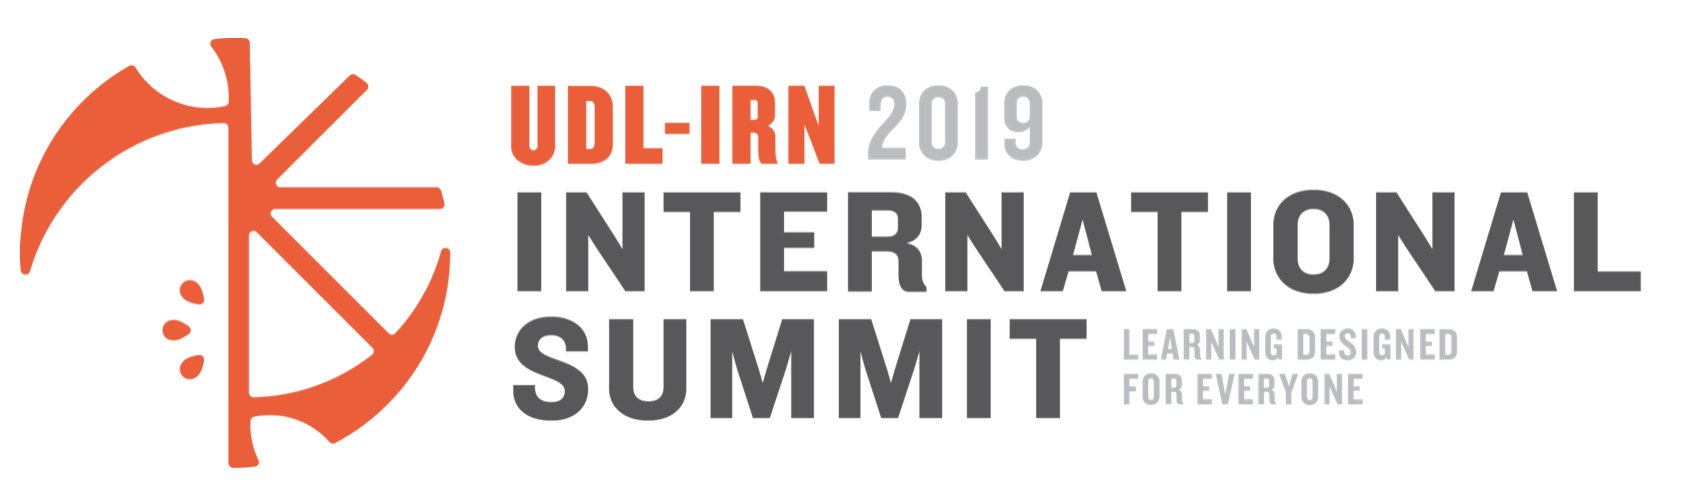 UDL-IRN 2019 International Summit Logo